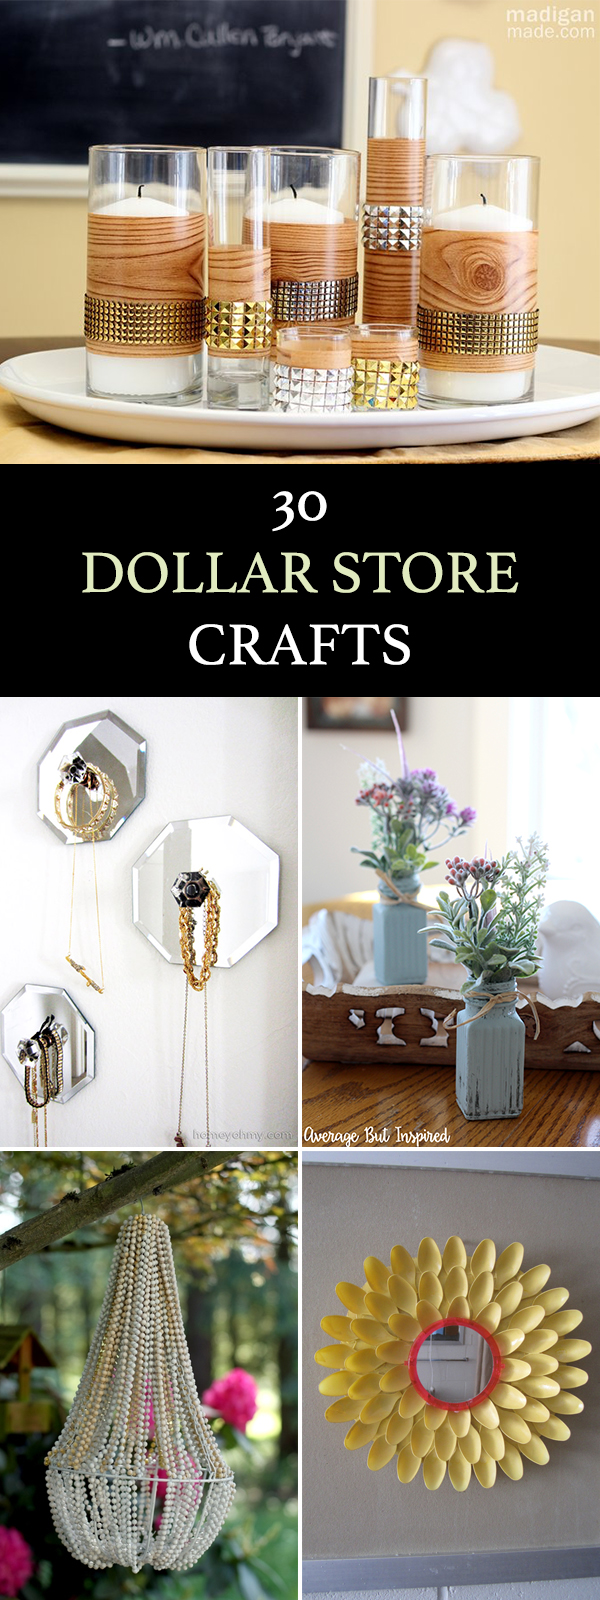 30 Easy & Stunning Dollar Store Crafts